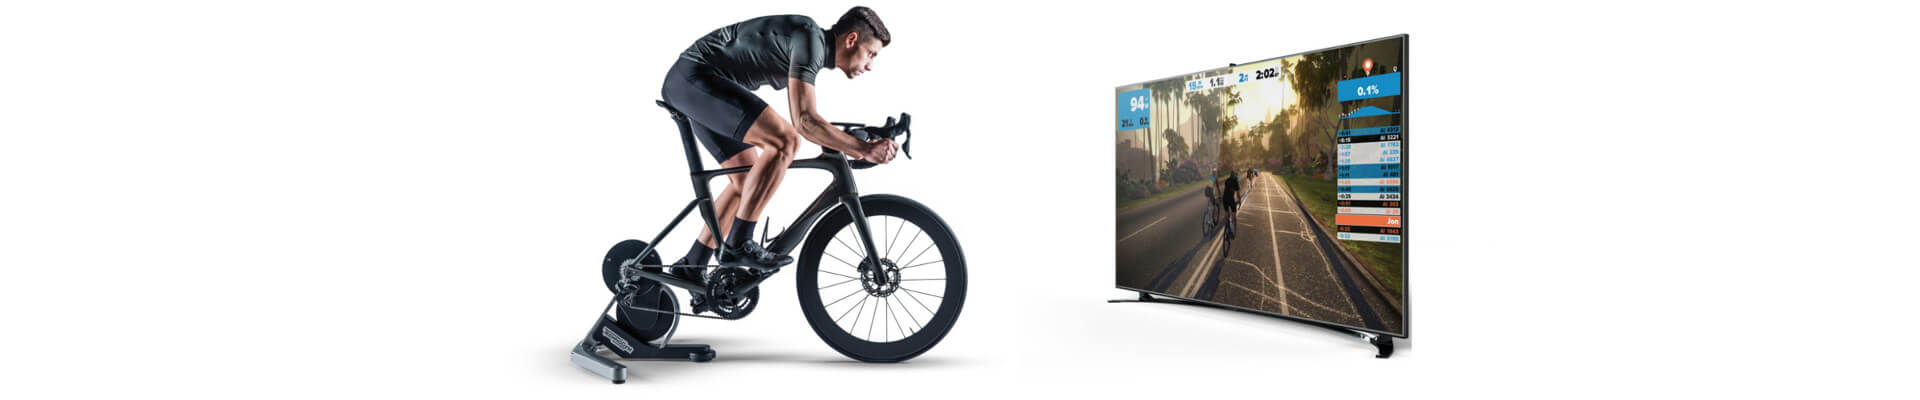 Discover Technogym's Zwift compatible trainer app for cyclists